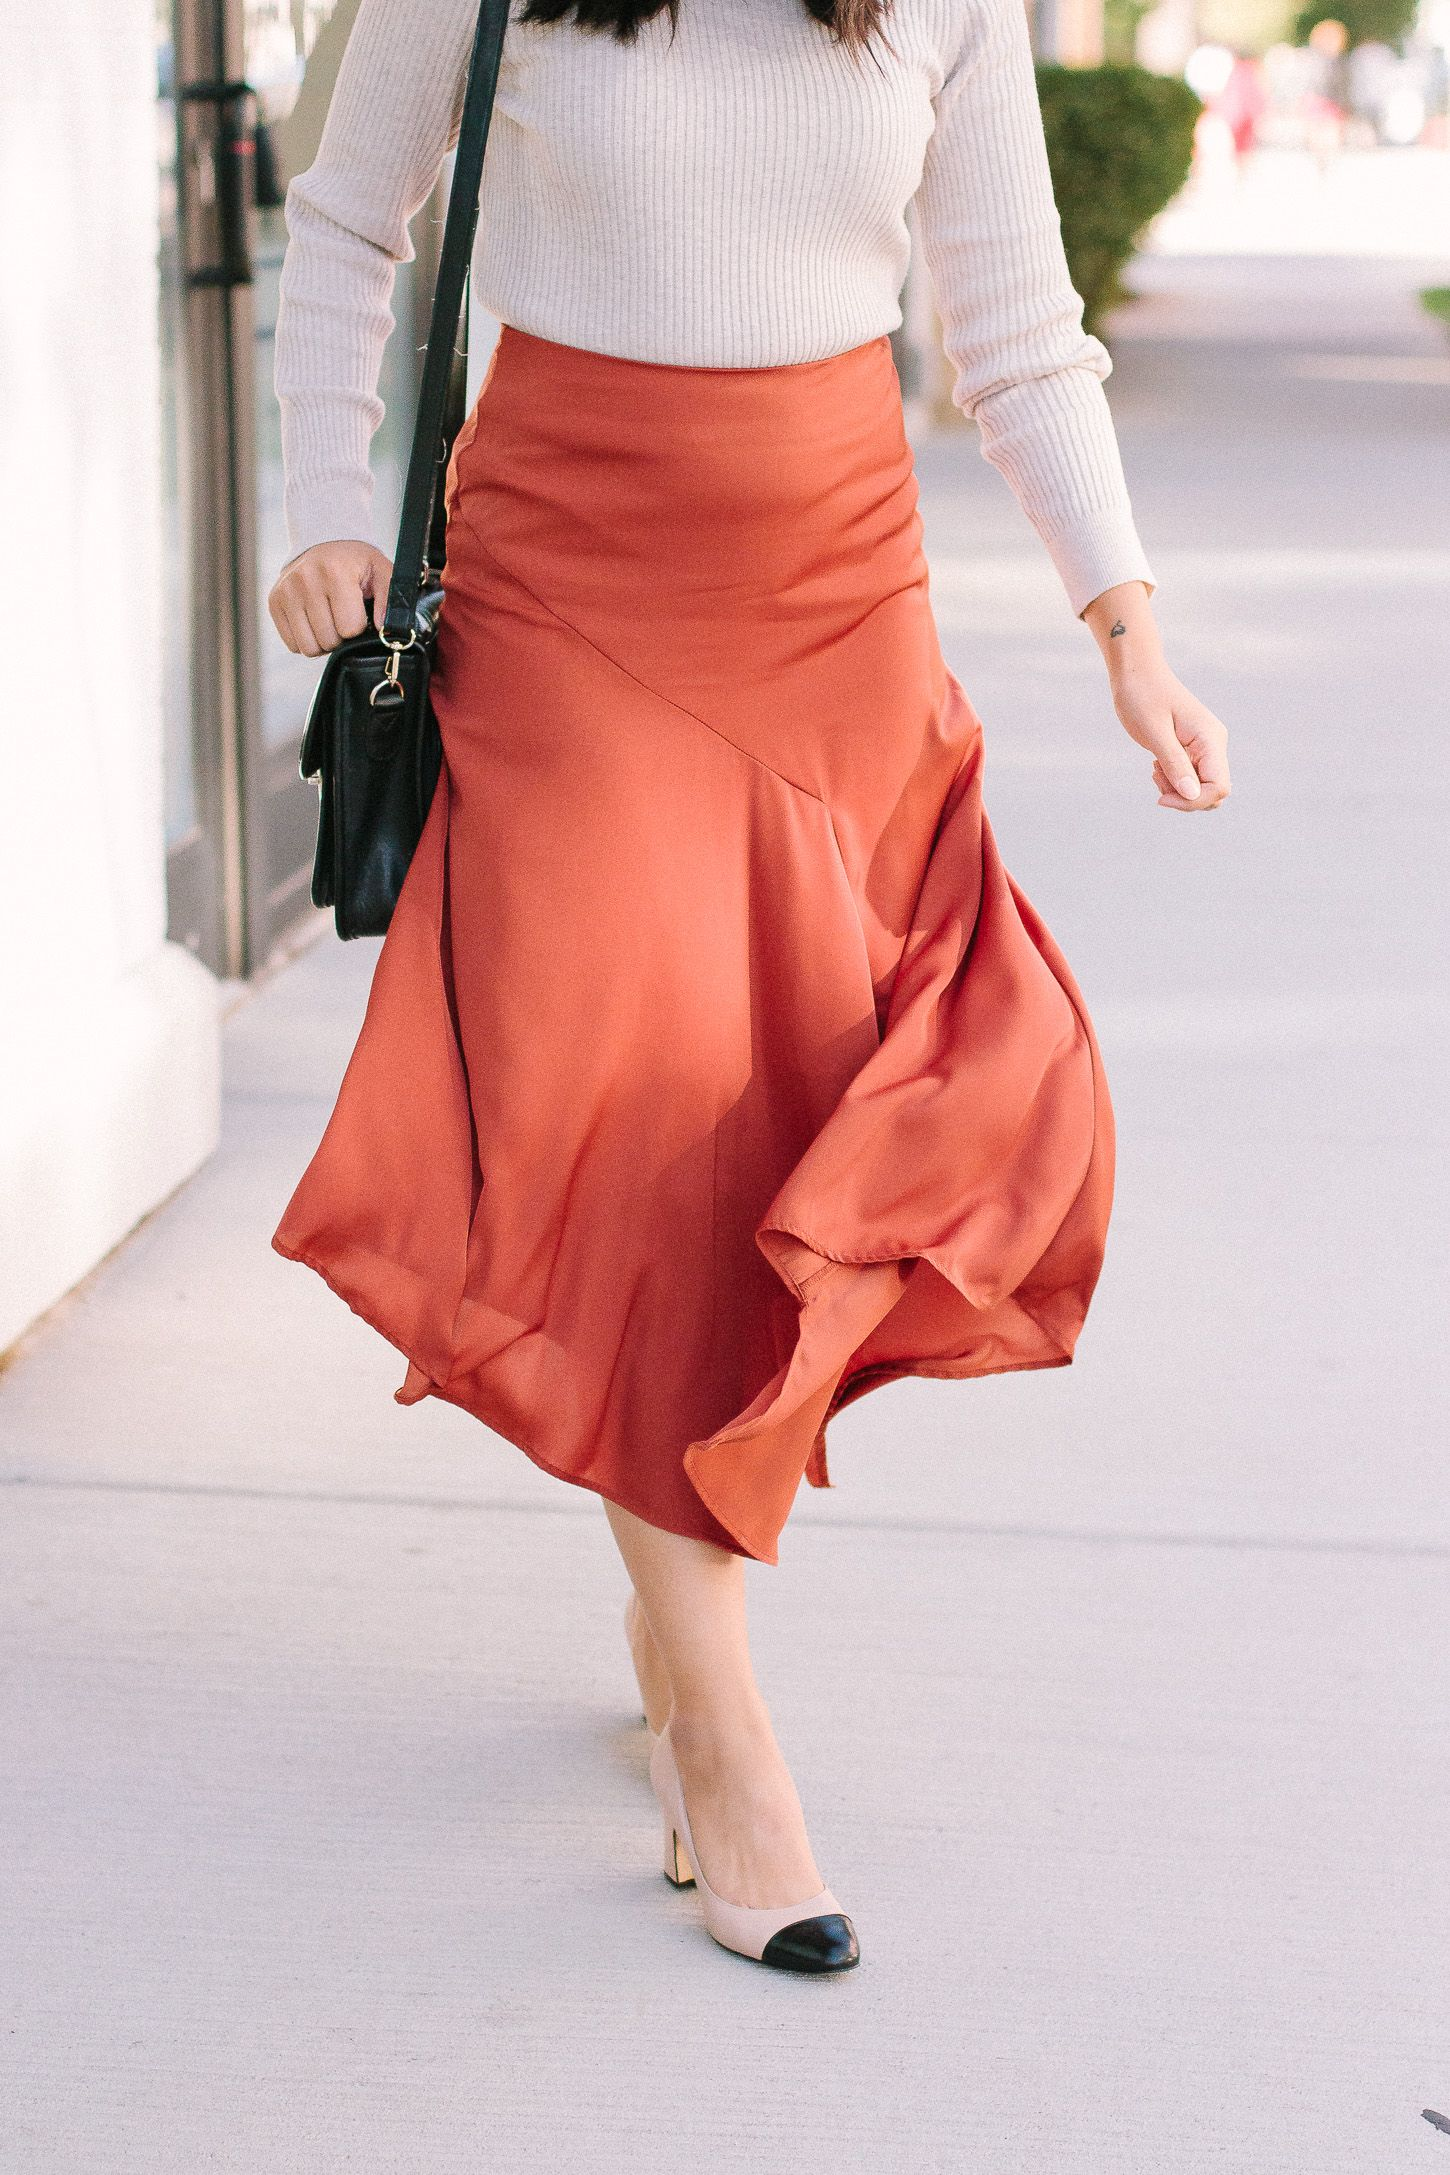 The It Fall Clothing Colors Of The Season: The Fall Color I Am Obsessed With This Year